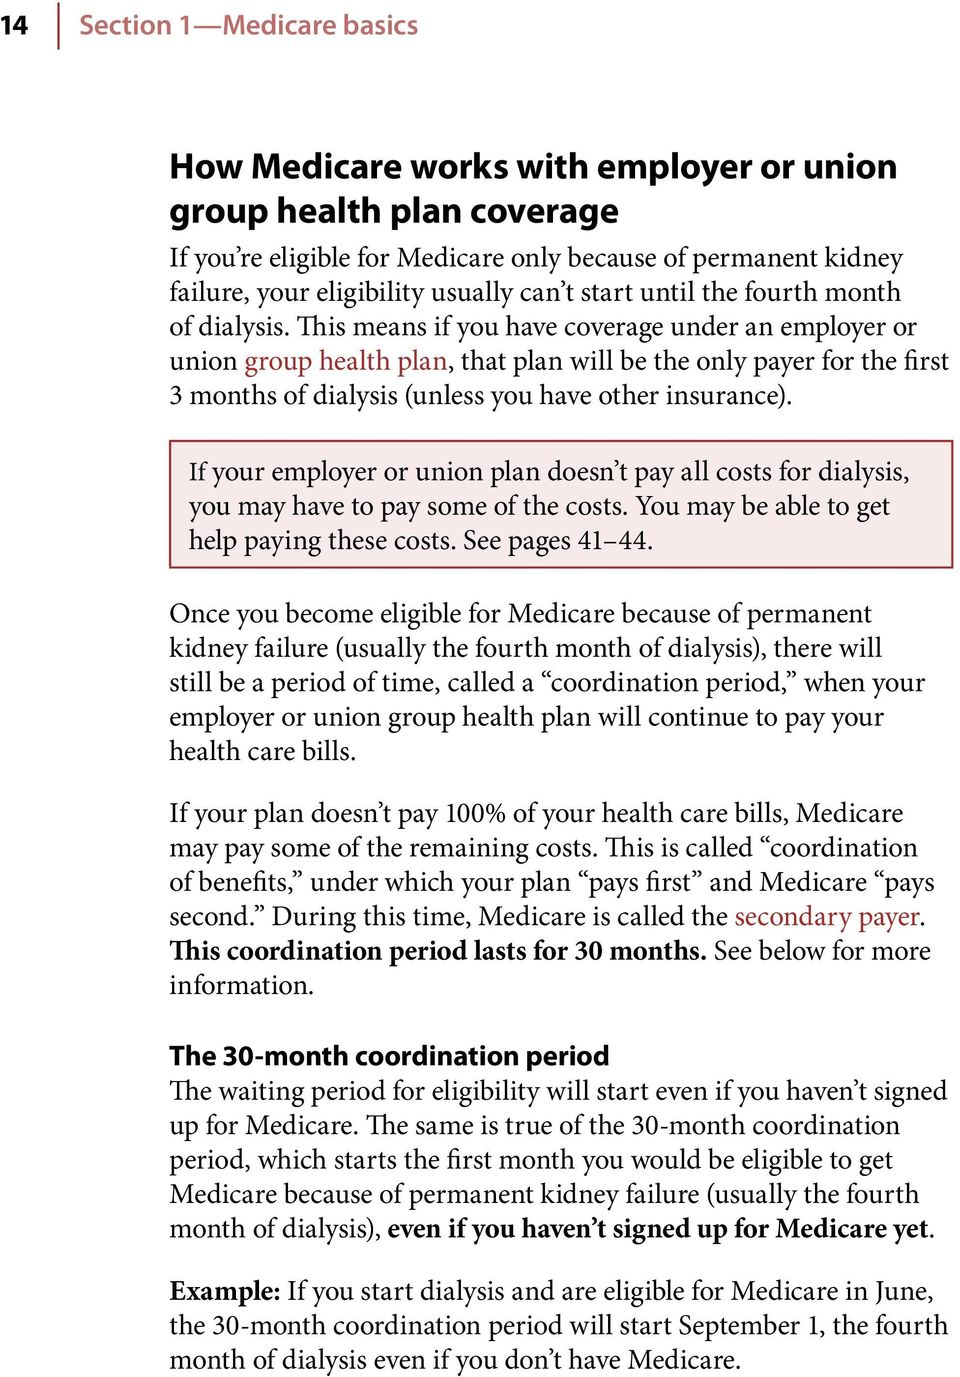 This means if you have coverage under an employer or union group health plan, that plan will be the only payer for the first 3 months of dialysis (unless you have other insurance).